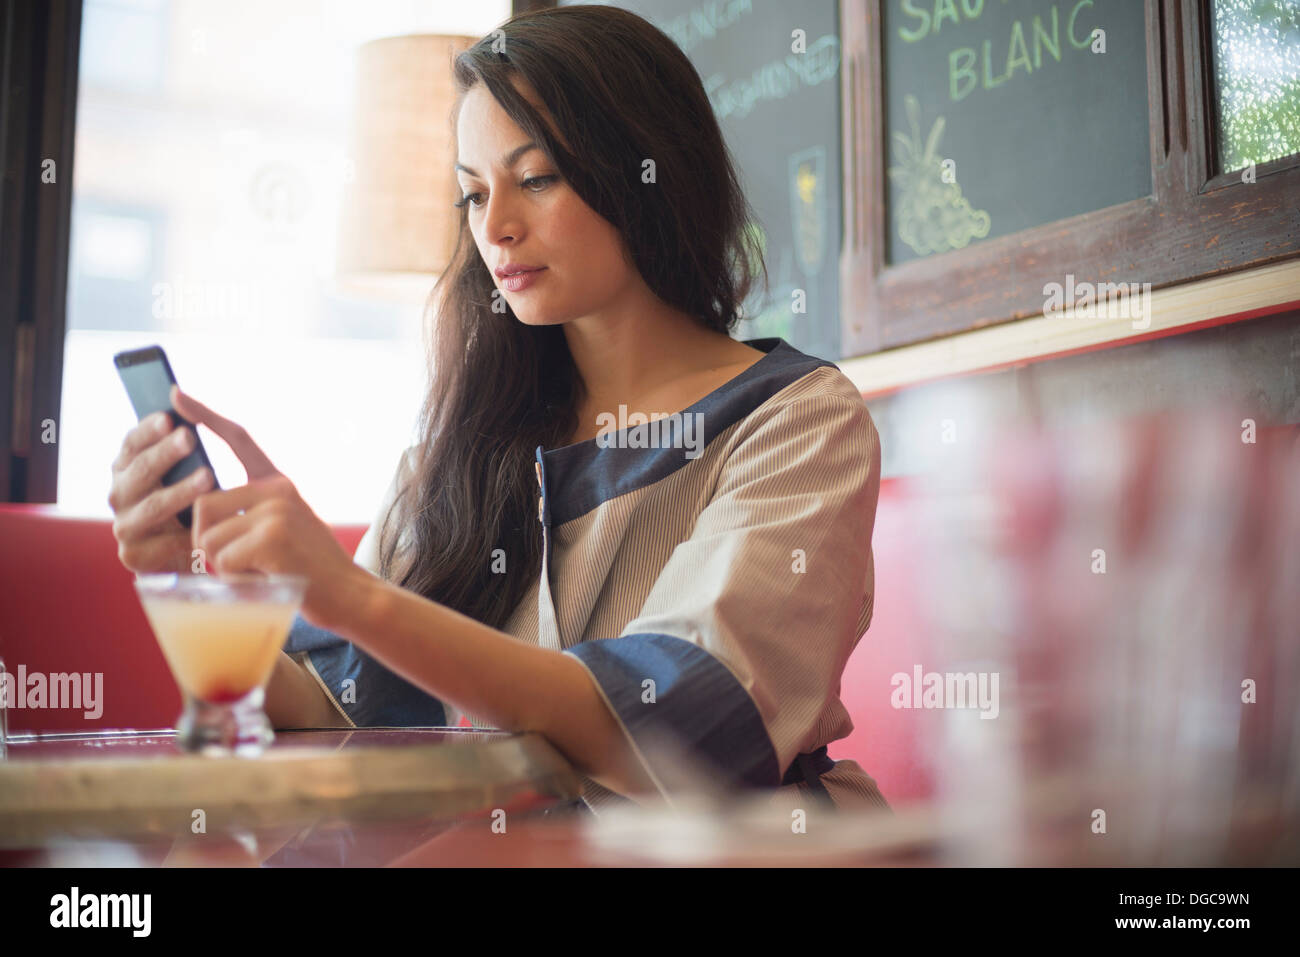 Mid adult women using mobile phone in restaurant Photo Stock